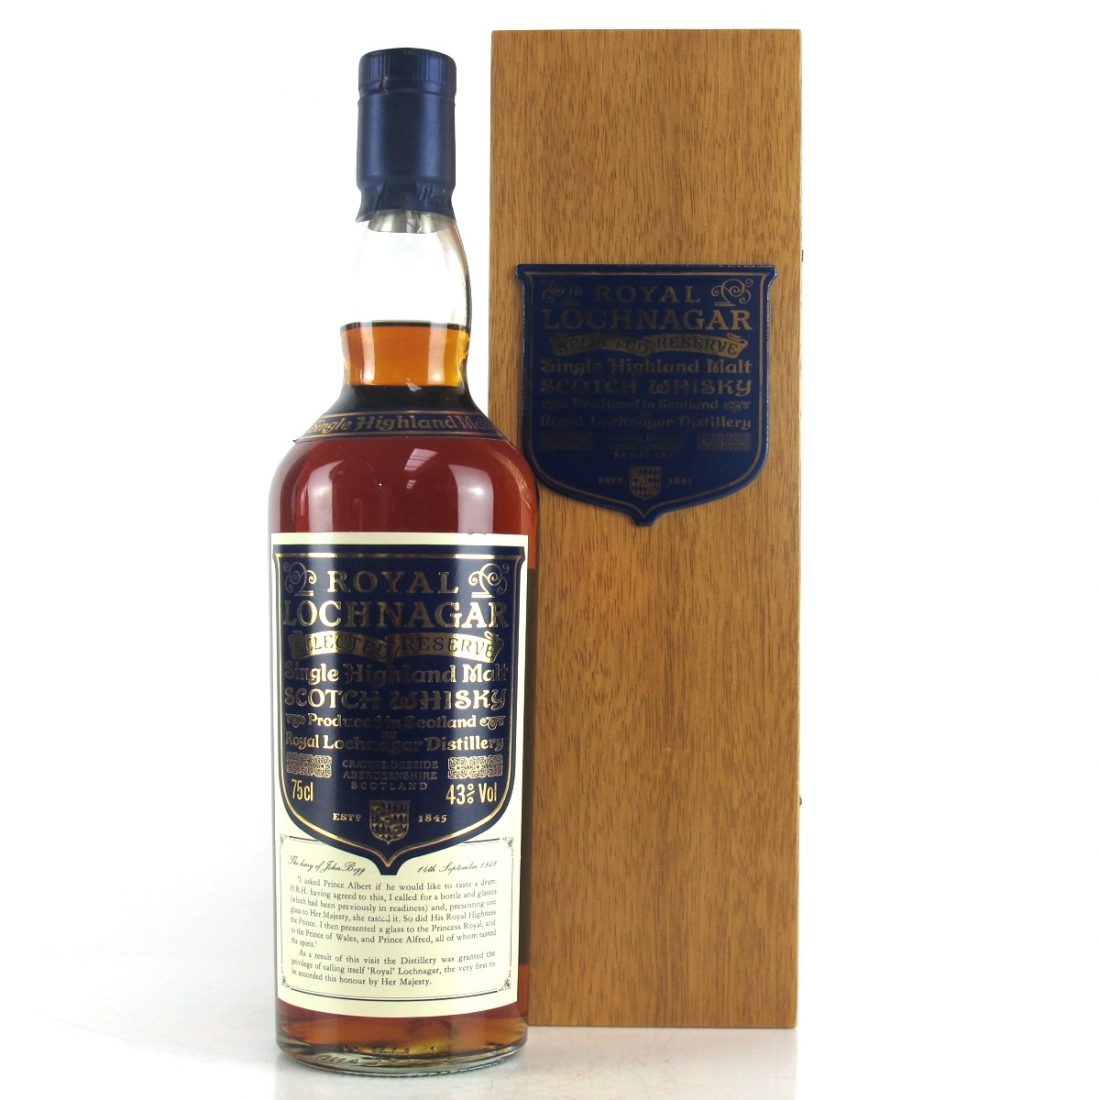 Royal Lochnagar Selected Reserve 75cl